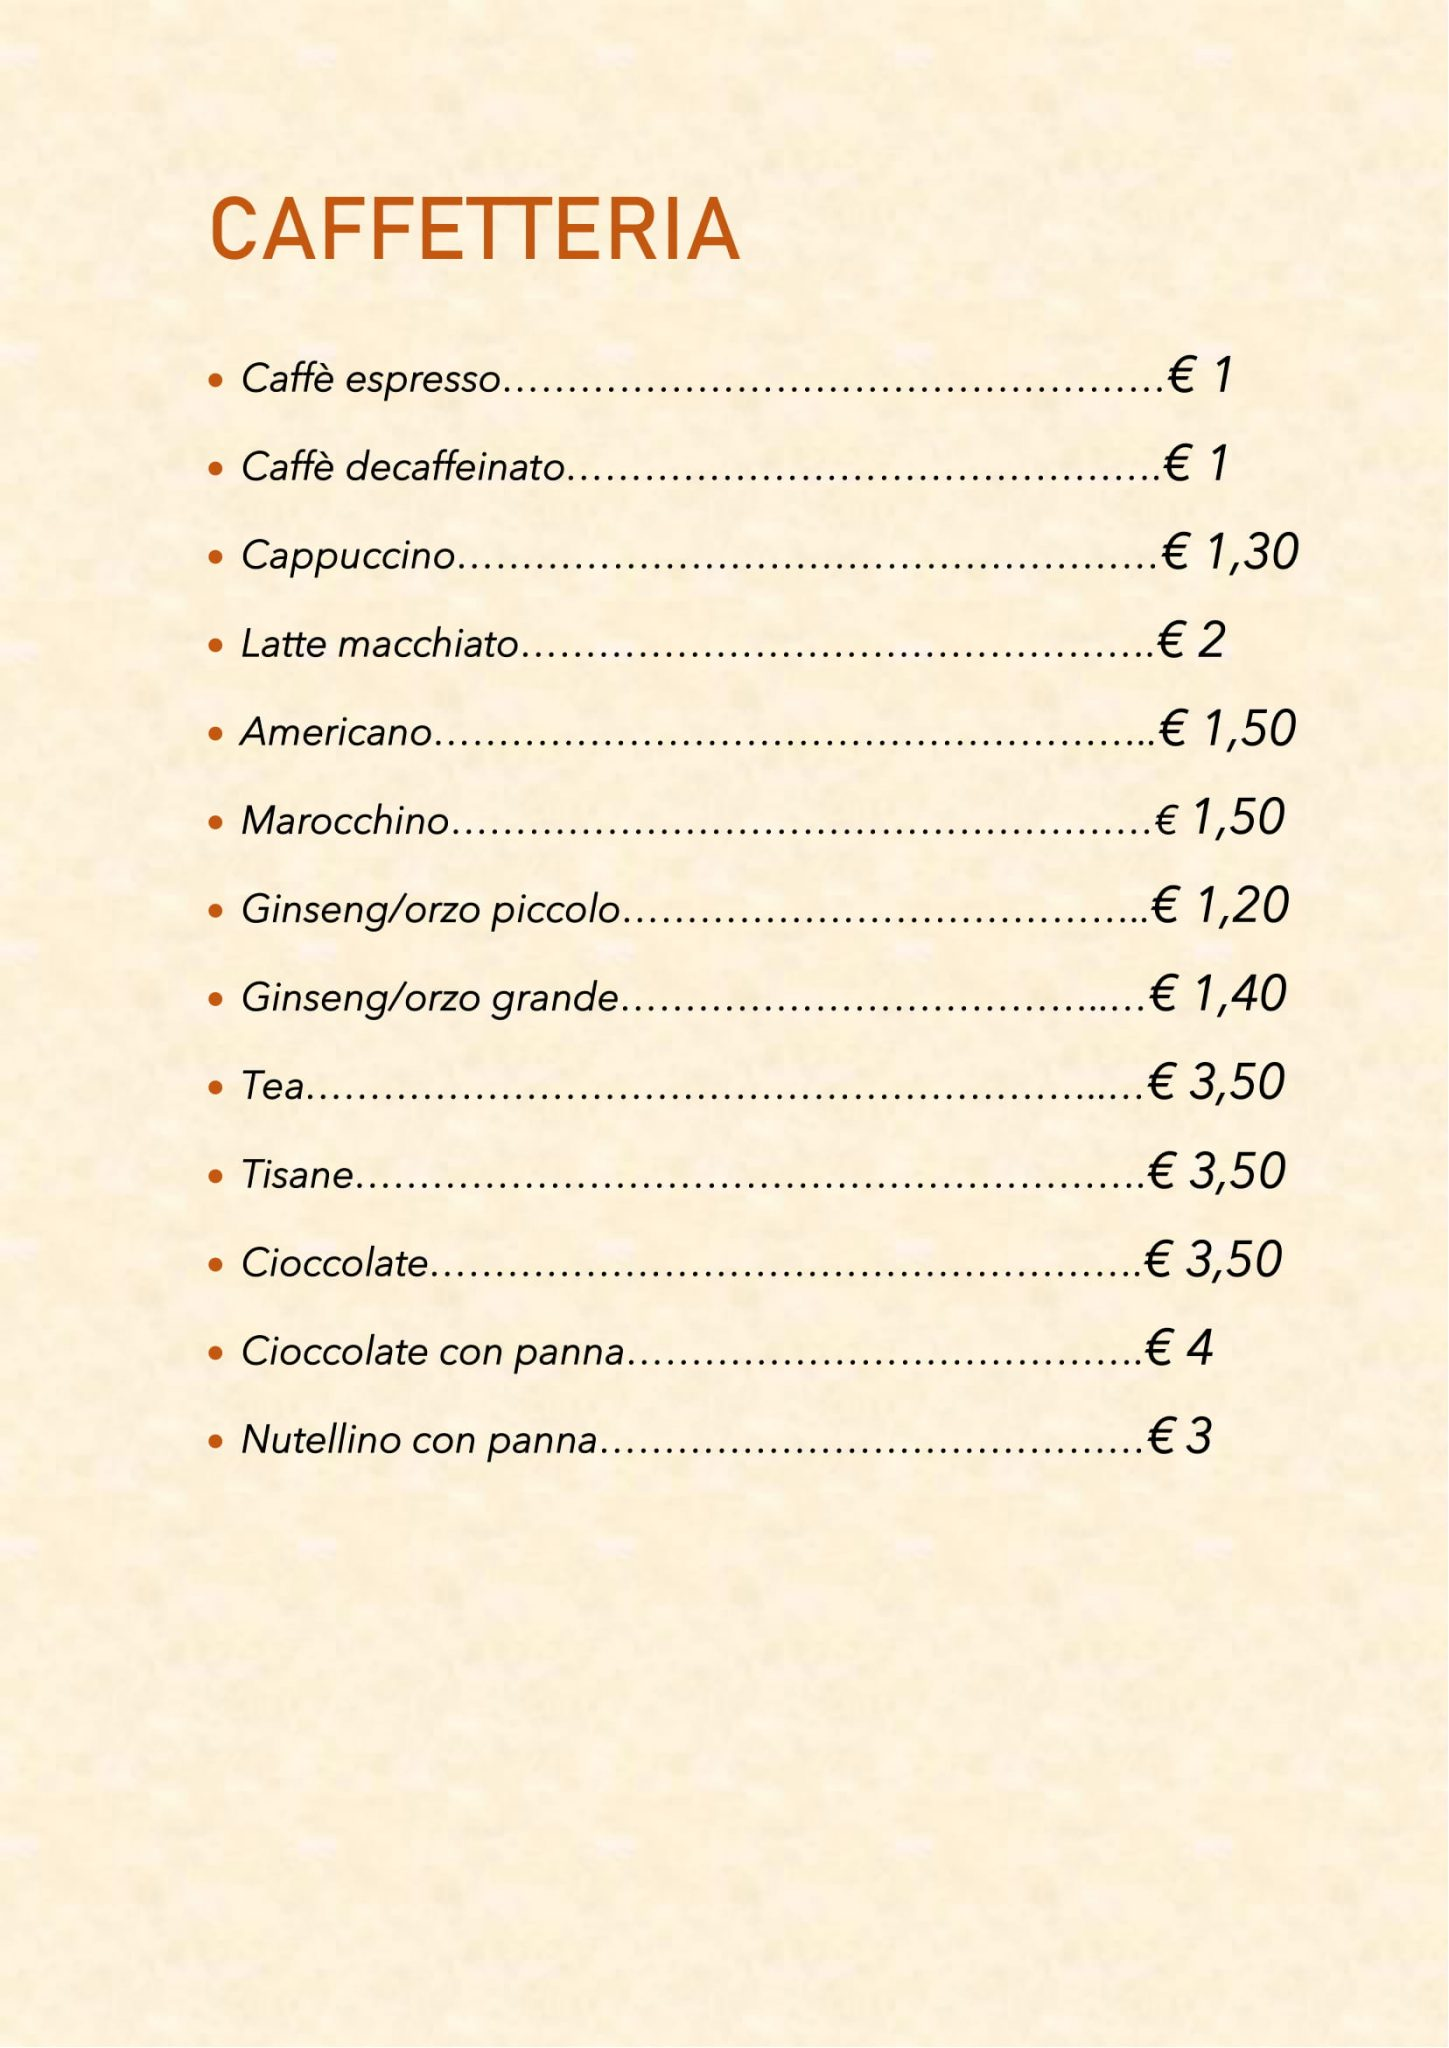 2020.05.27_Caffe_Borgo_Menu_(Draft_V3)-4